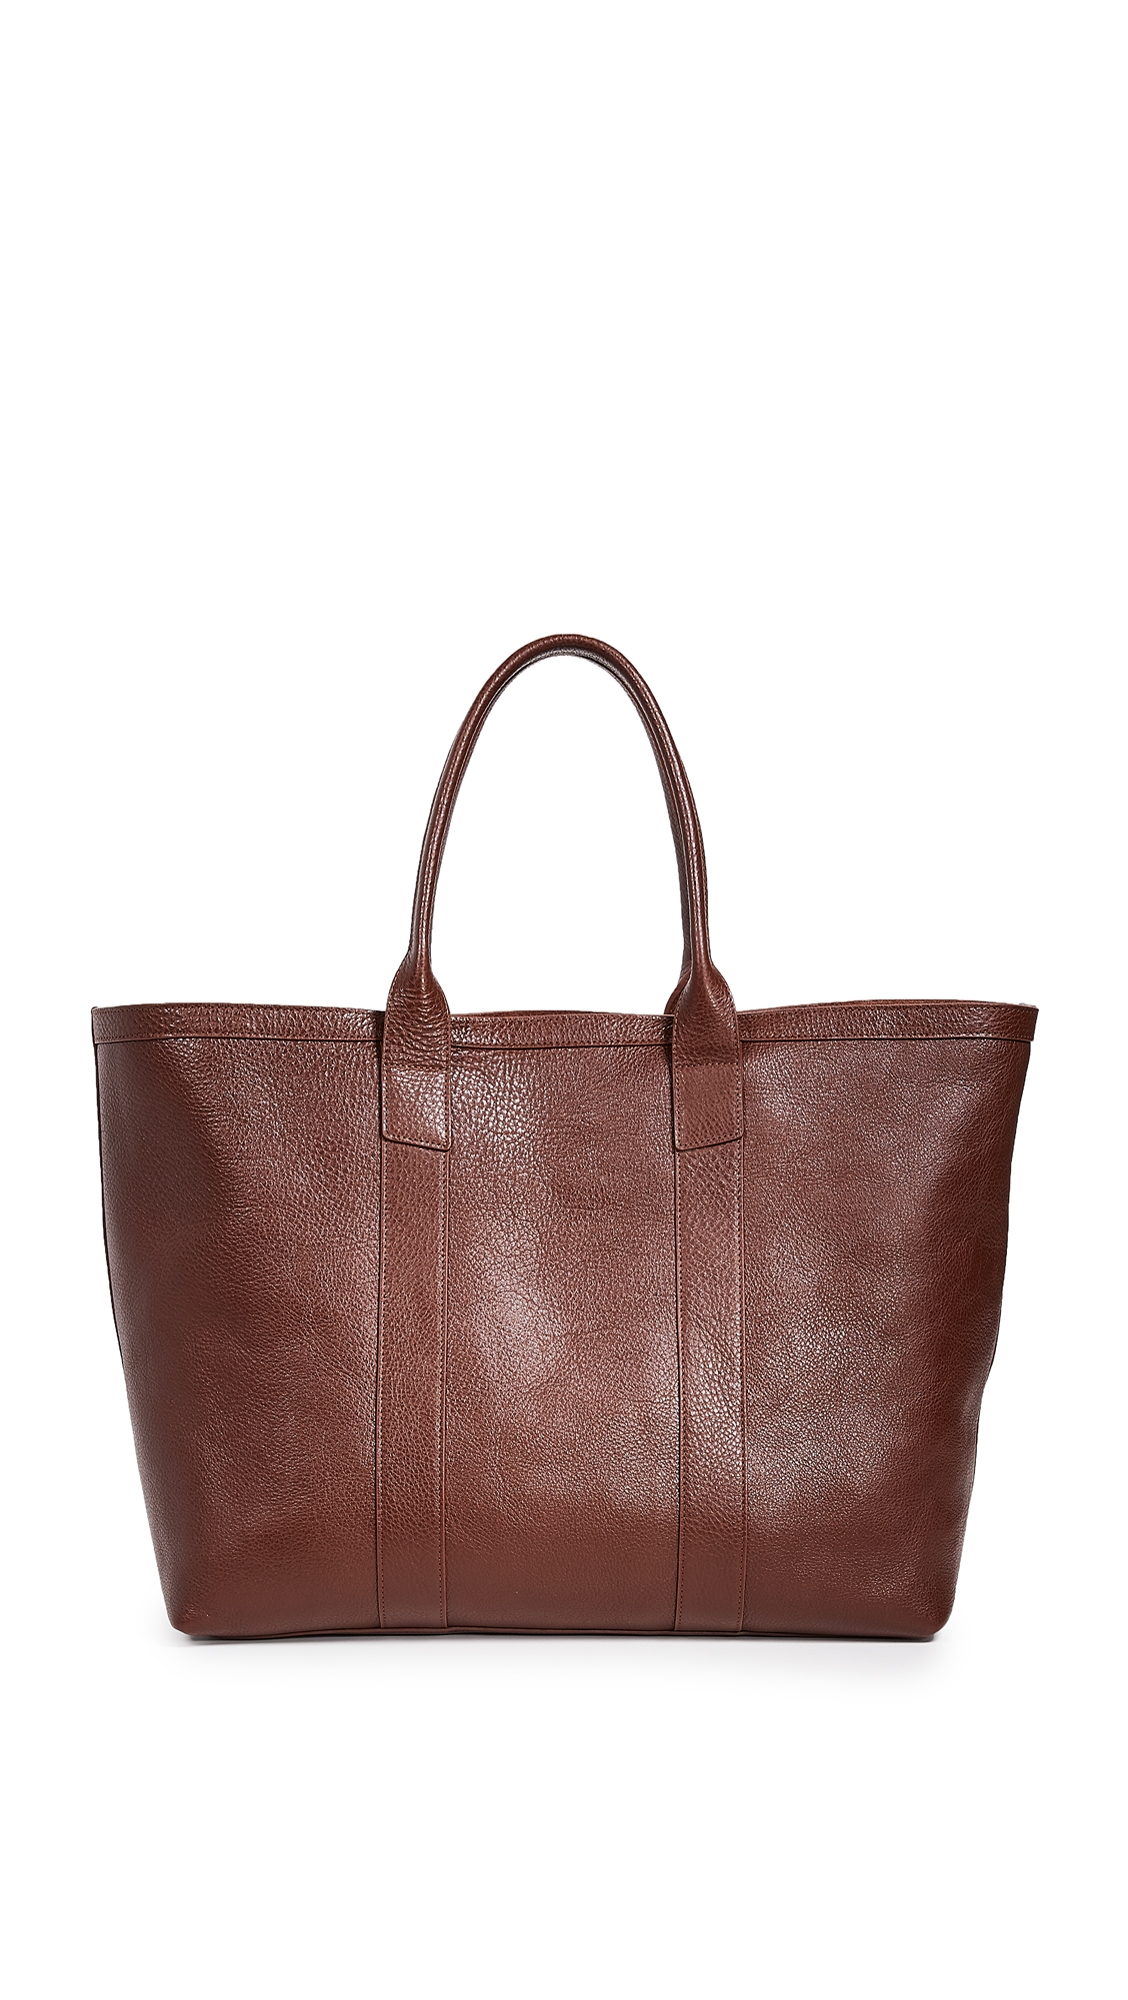 LOTUFF LEATHER Leather Working Tote in Chestnut